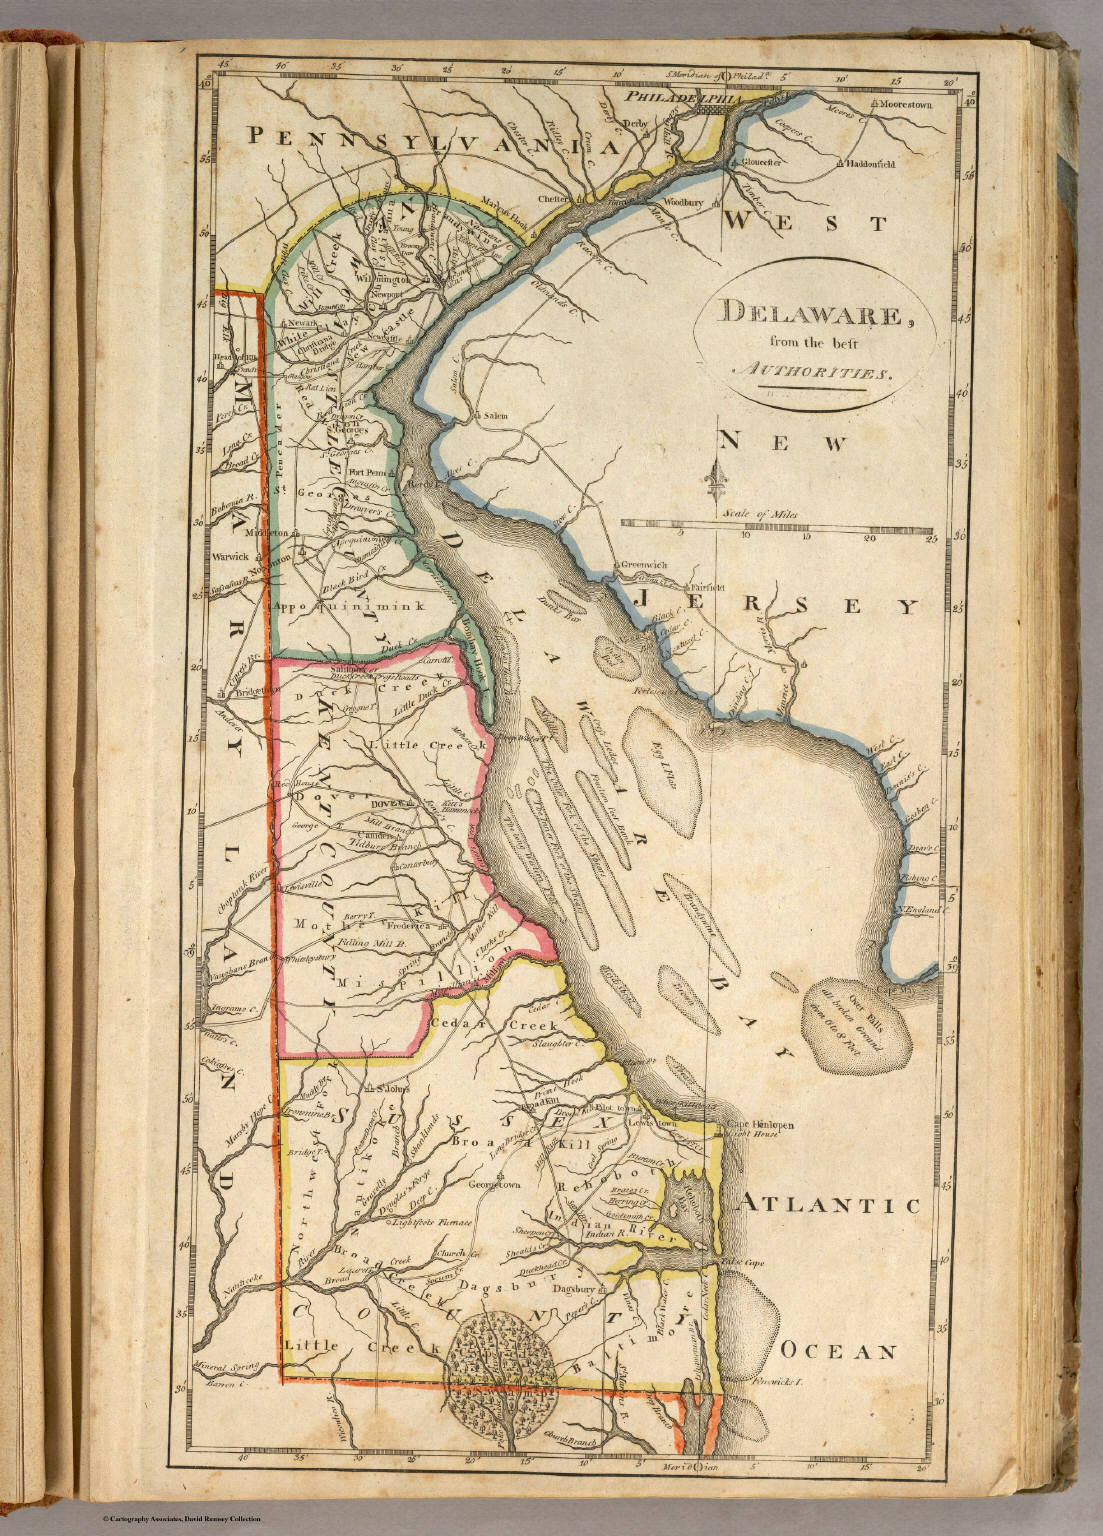 Delaware David Rumsey Historical Map Collection - Delaware map